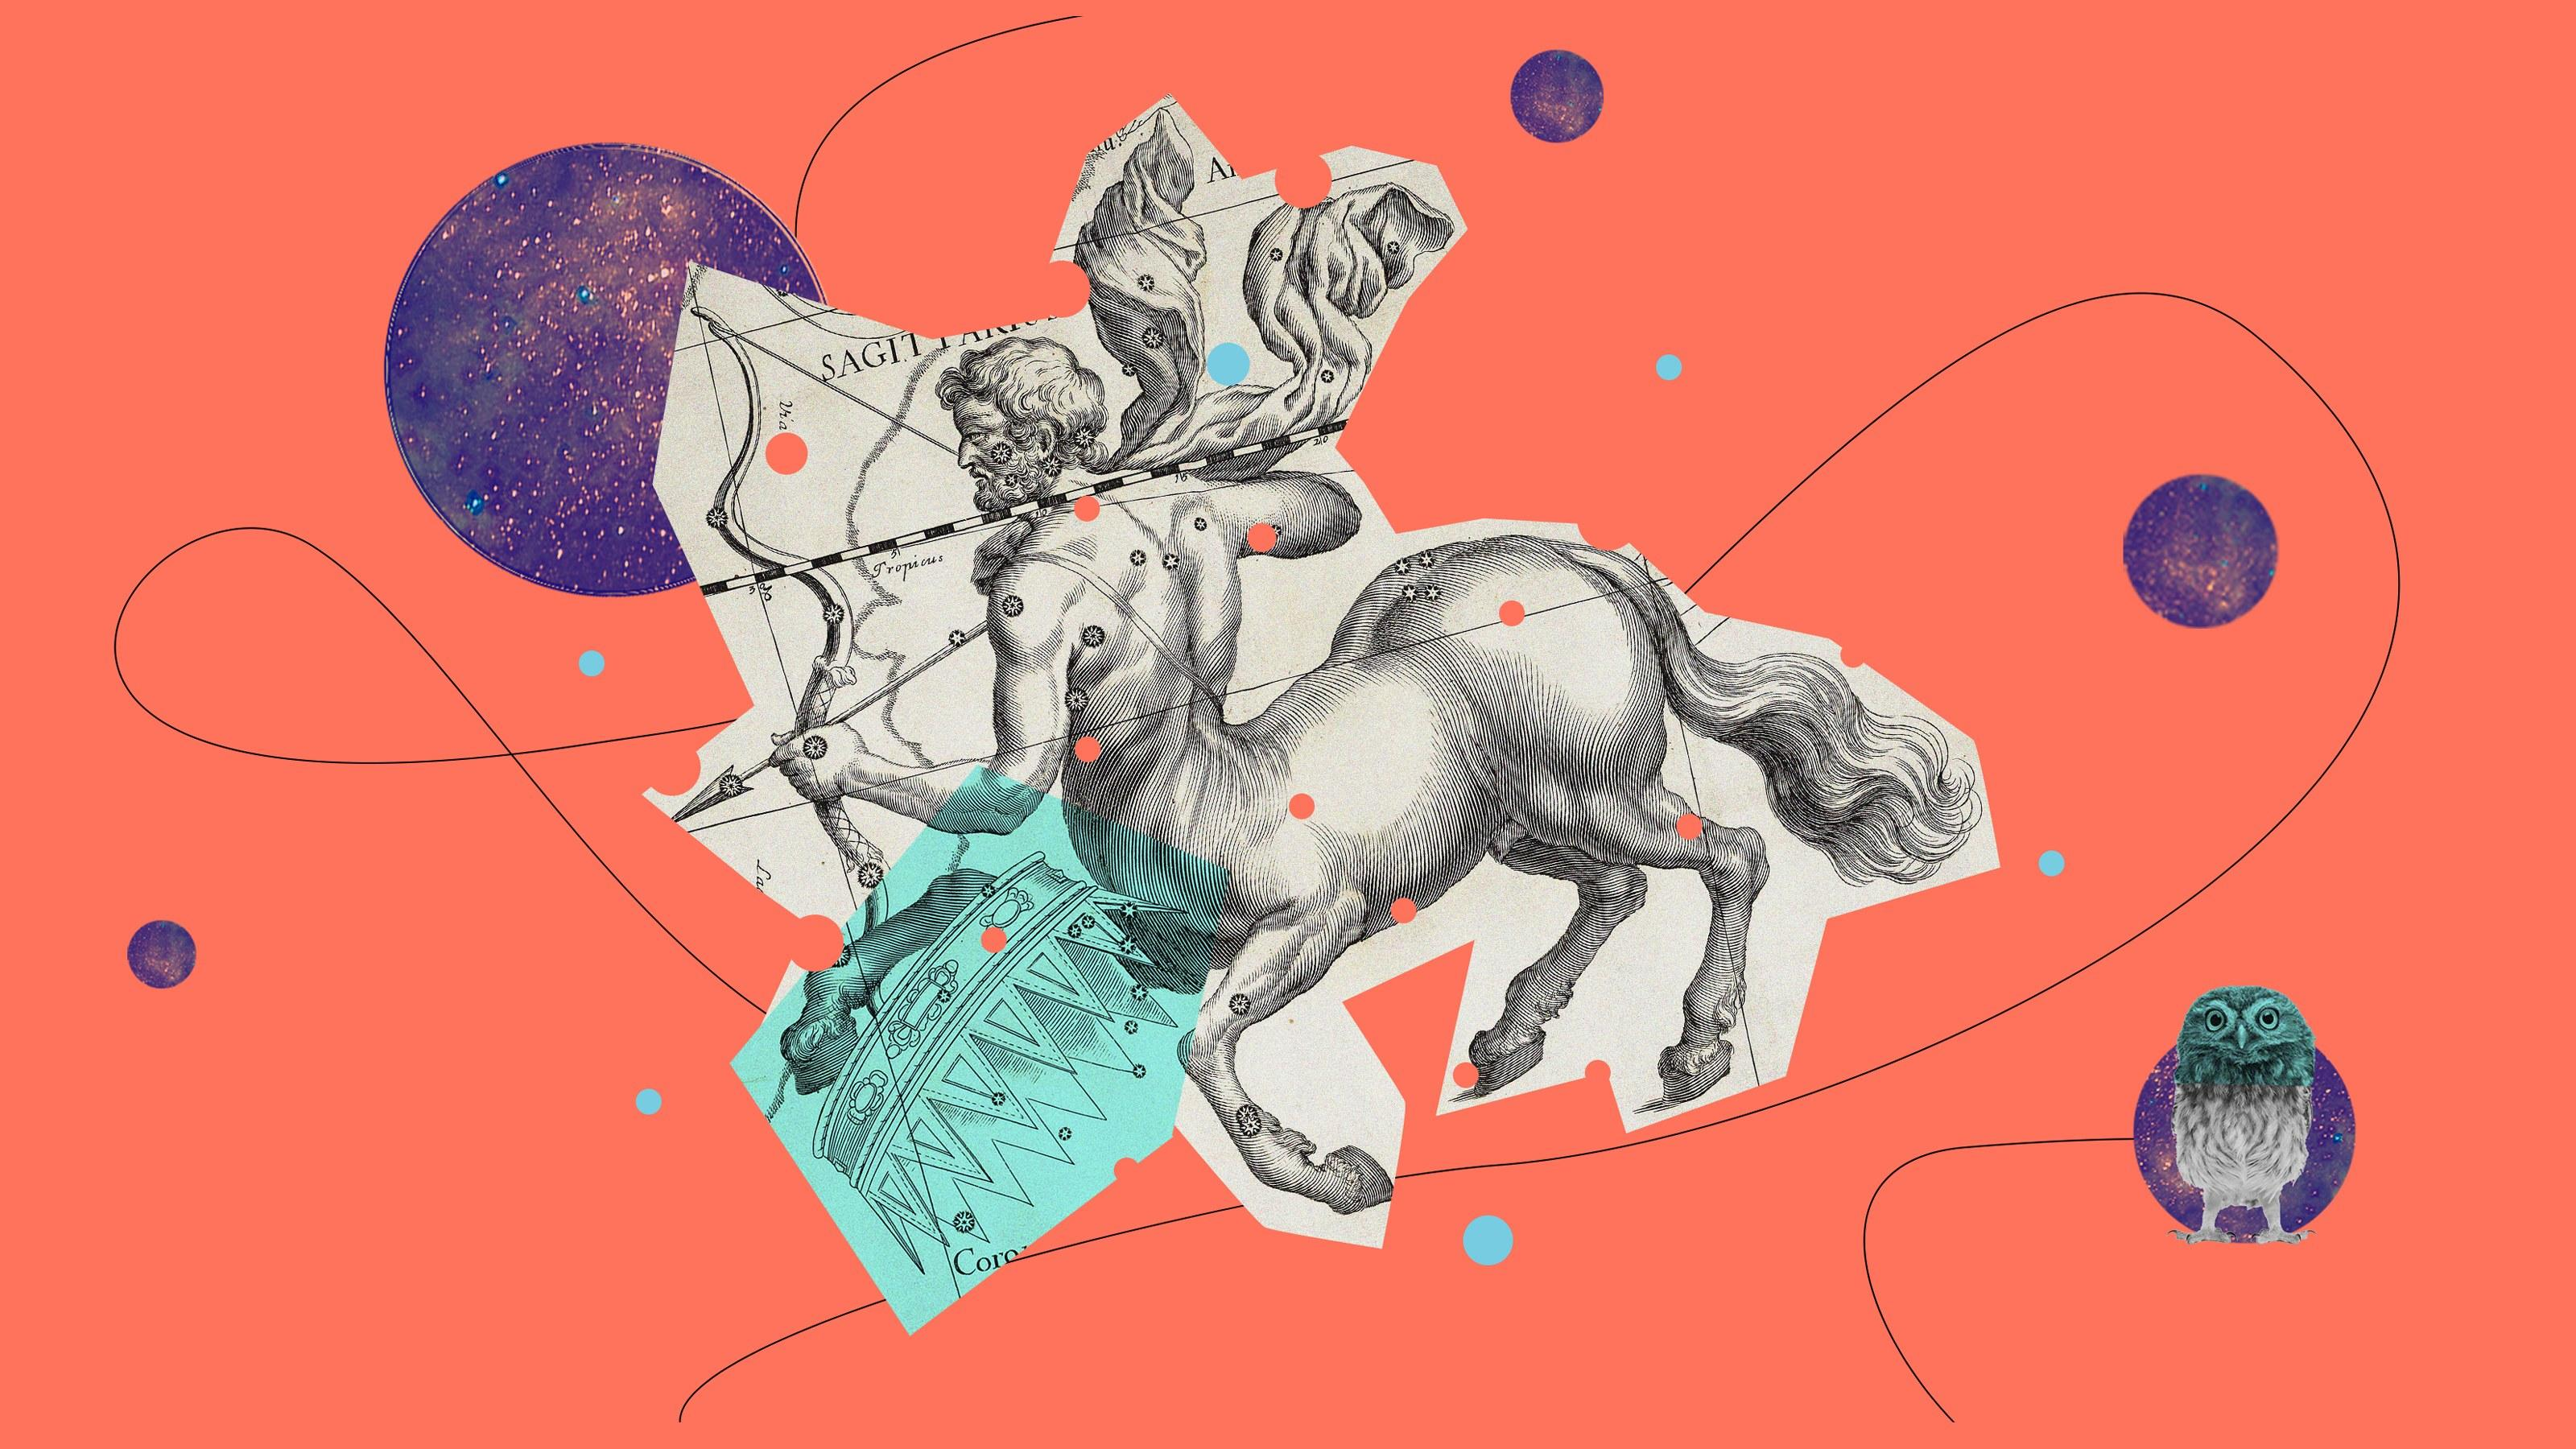 Sagittarius Weekly Horoscope: See What's in Store for Your